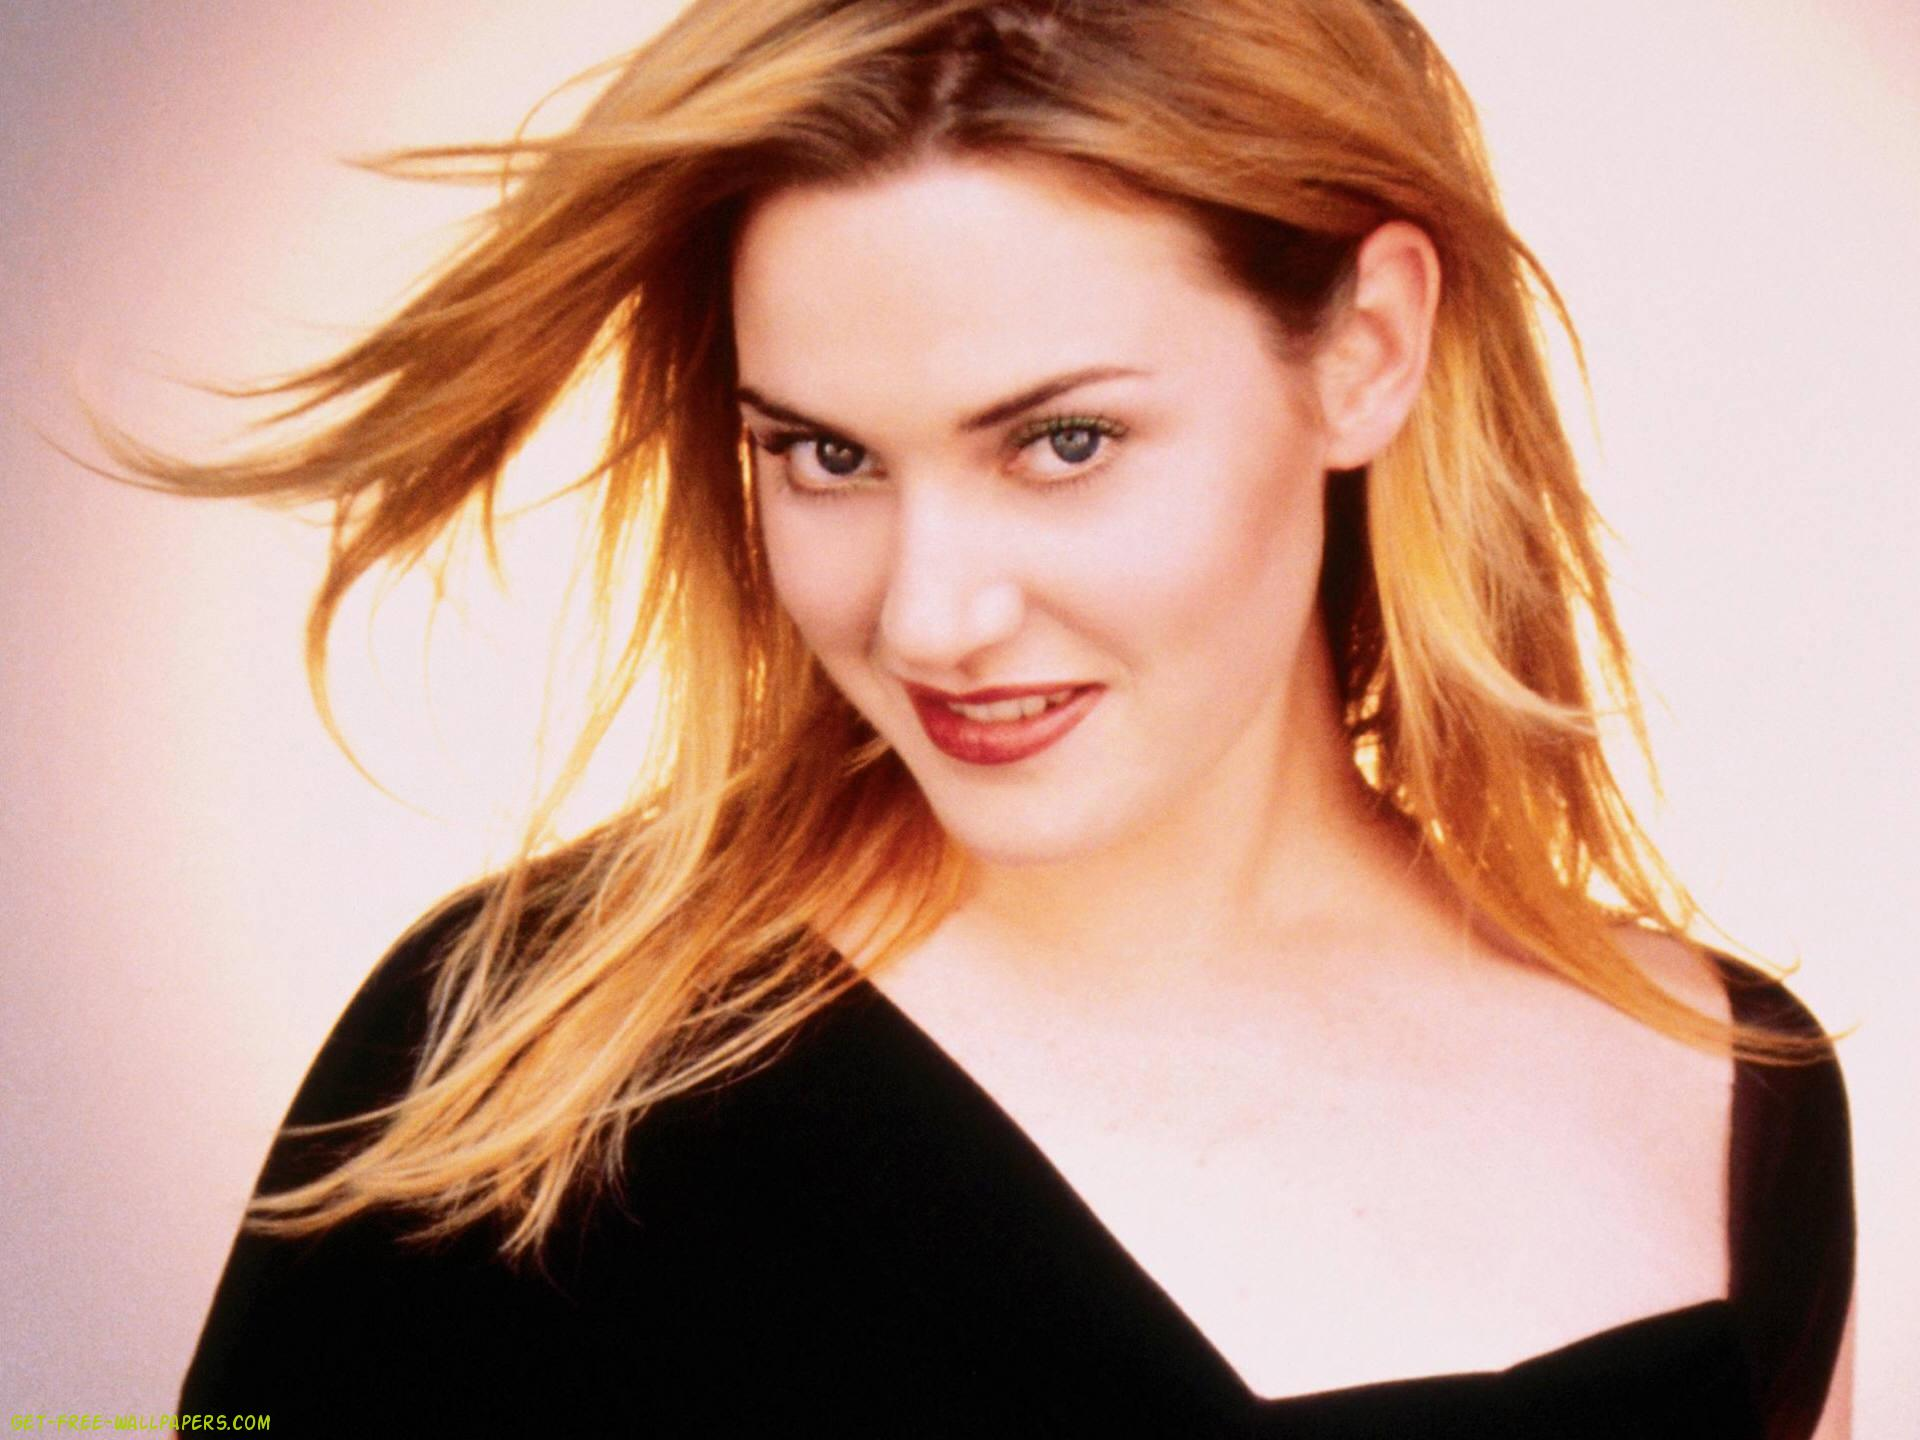 ... kate-winslet-background-full-hd-wallpaper-1920x1440 ...